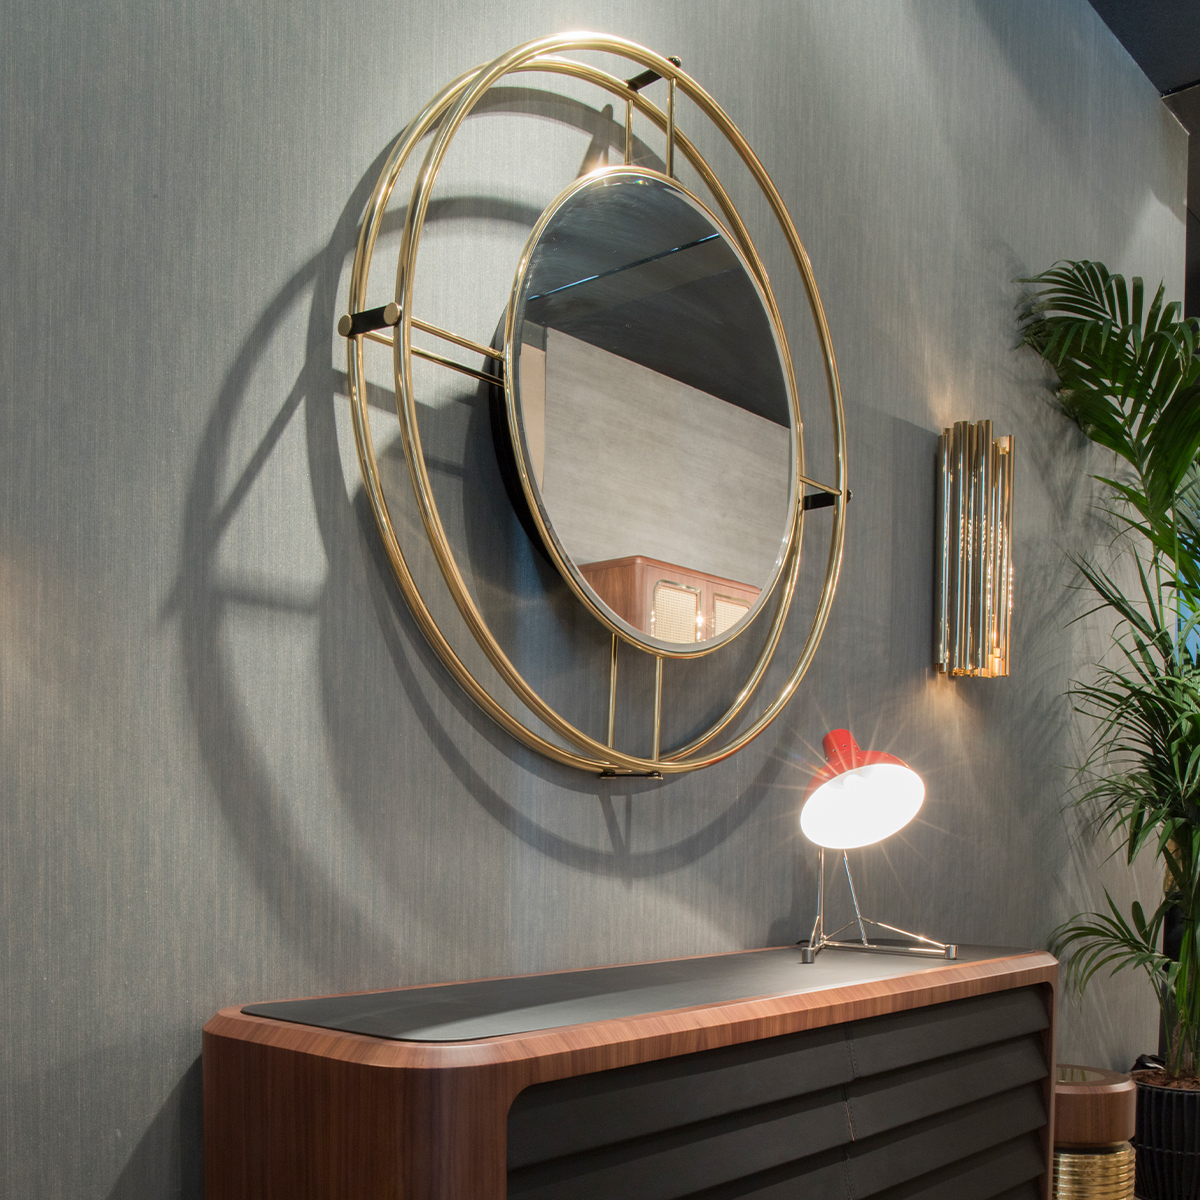 Top 25 Luxury Mirrors That Will Enhance Your Home_1 luxury mirrors Top 20 Luxury Mirrors That Will Enhance Your Home Top 25 Luxury Mirrors That Will Enhance Your Home 1